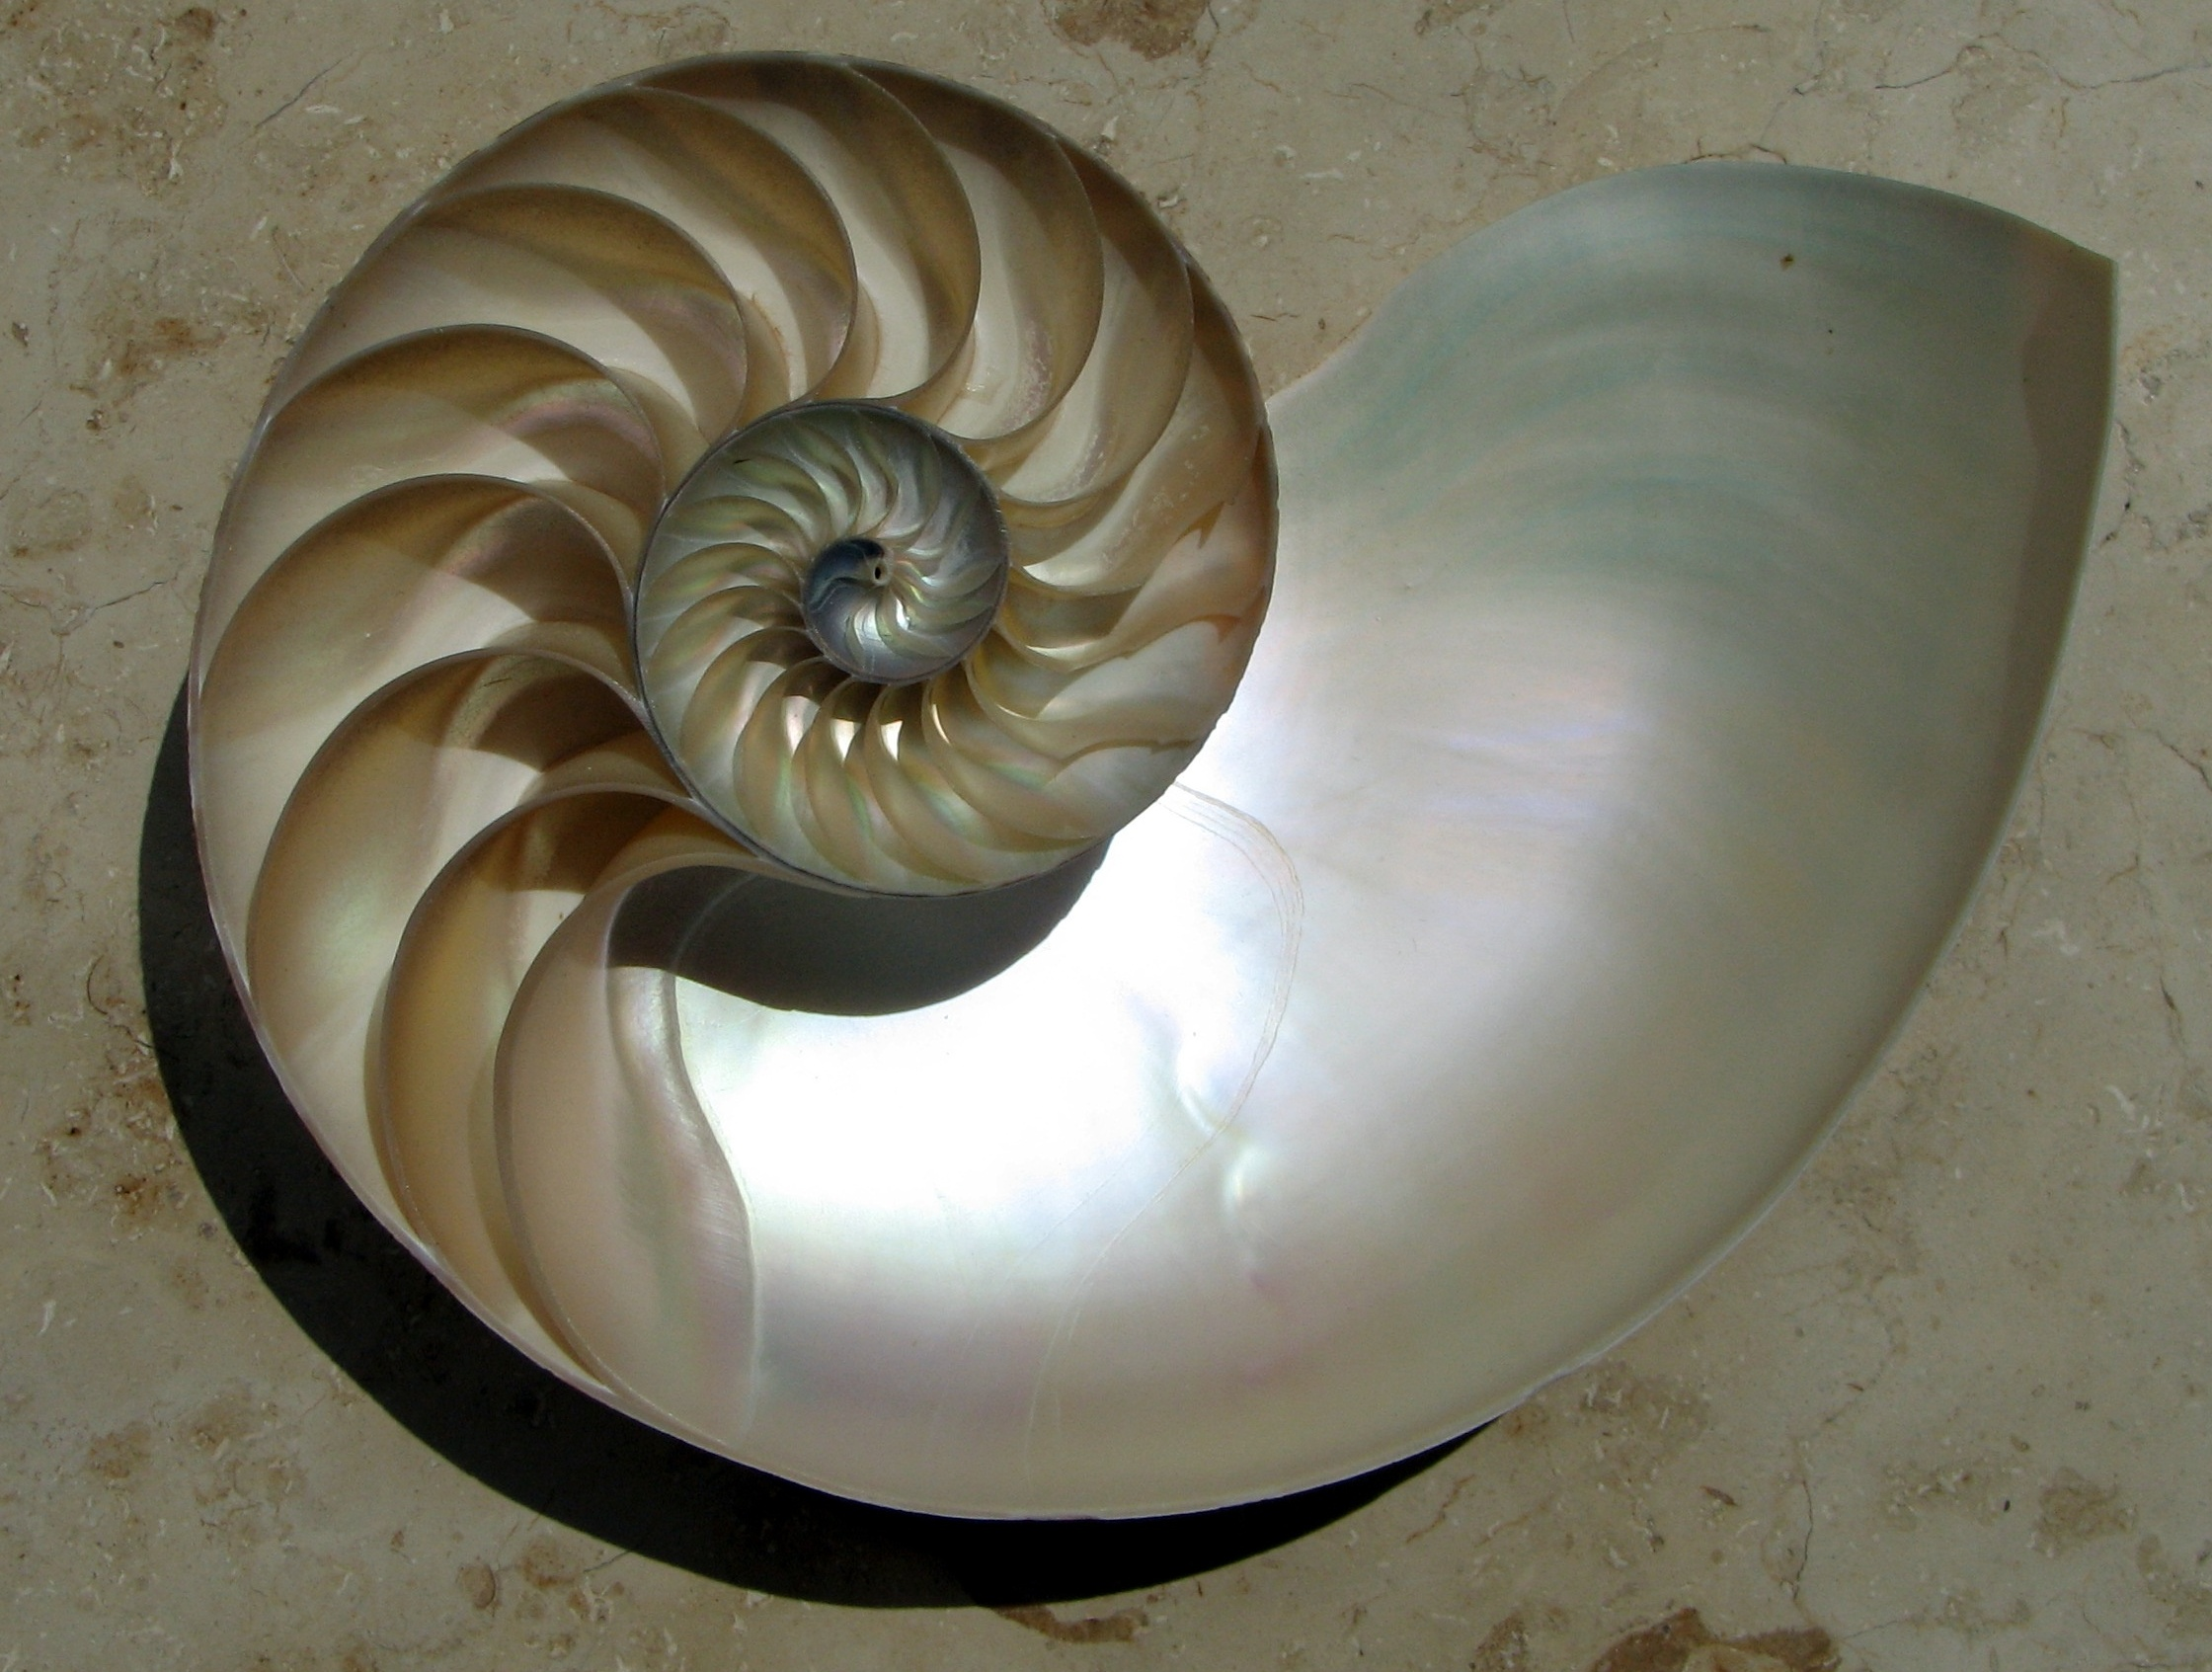 Chambered nautilus from Wikipedia Commons